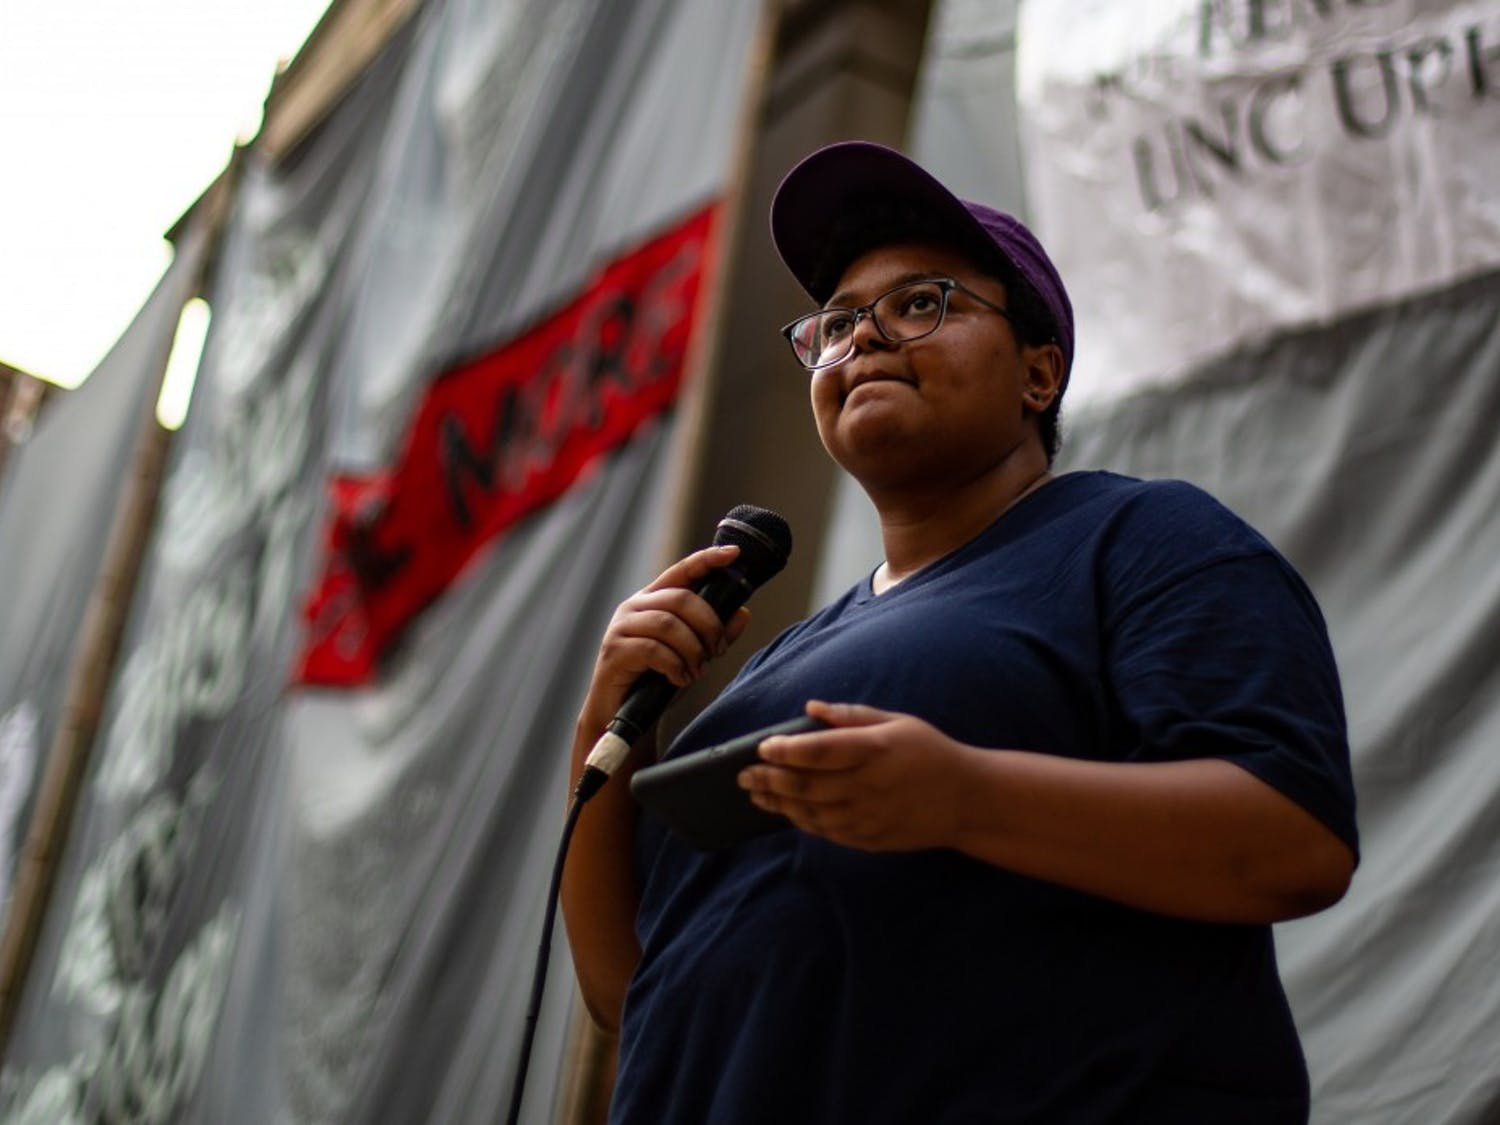 Maya Little speaks at the Peace and Justice Plaza on Monday, Aug. 21, 2018 against confederate monument Silent Sam. Maya had been previously arrested for her demonstrations against Silent Sam.